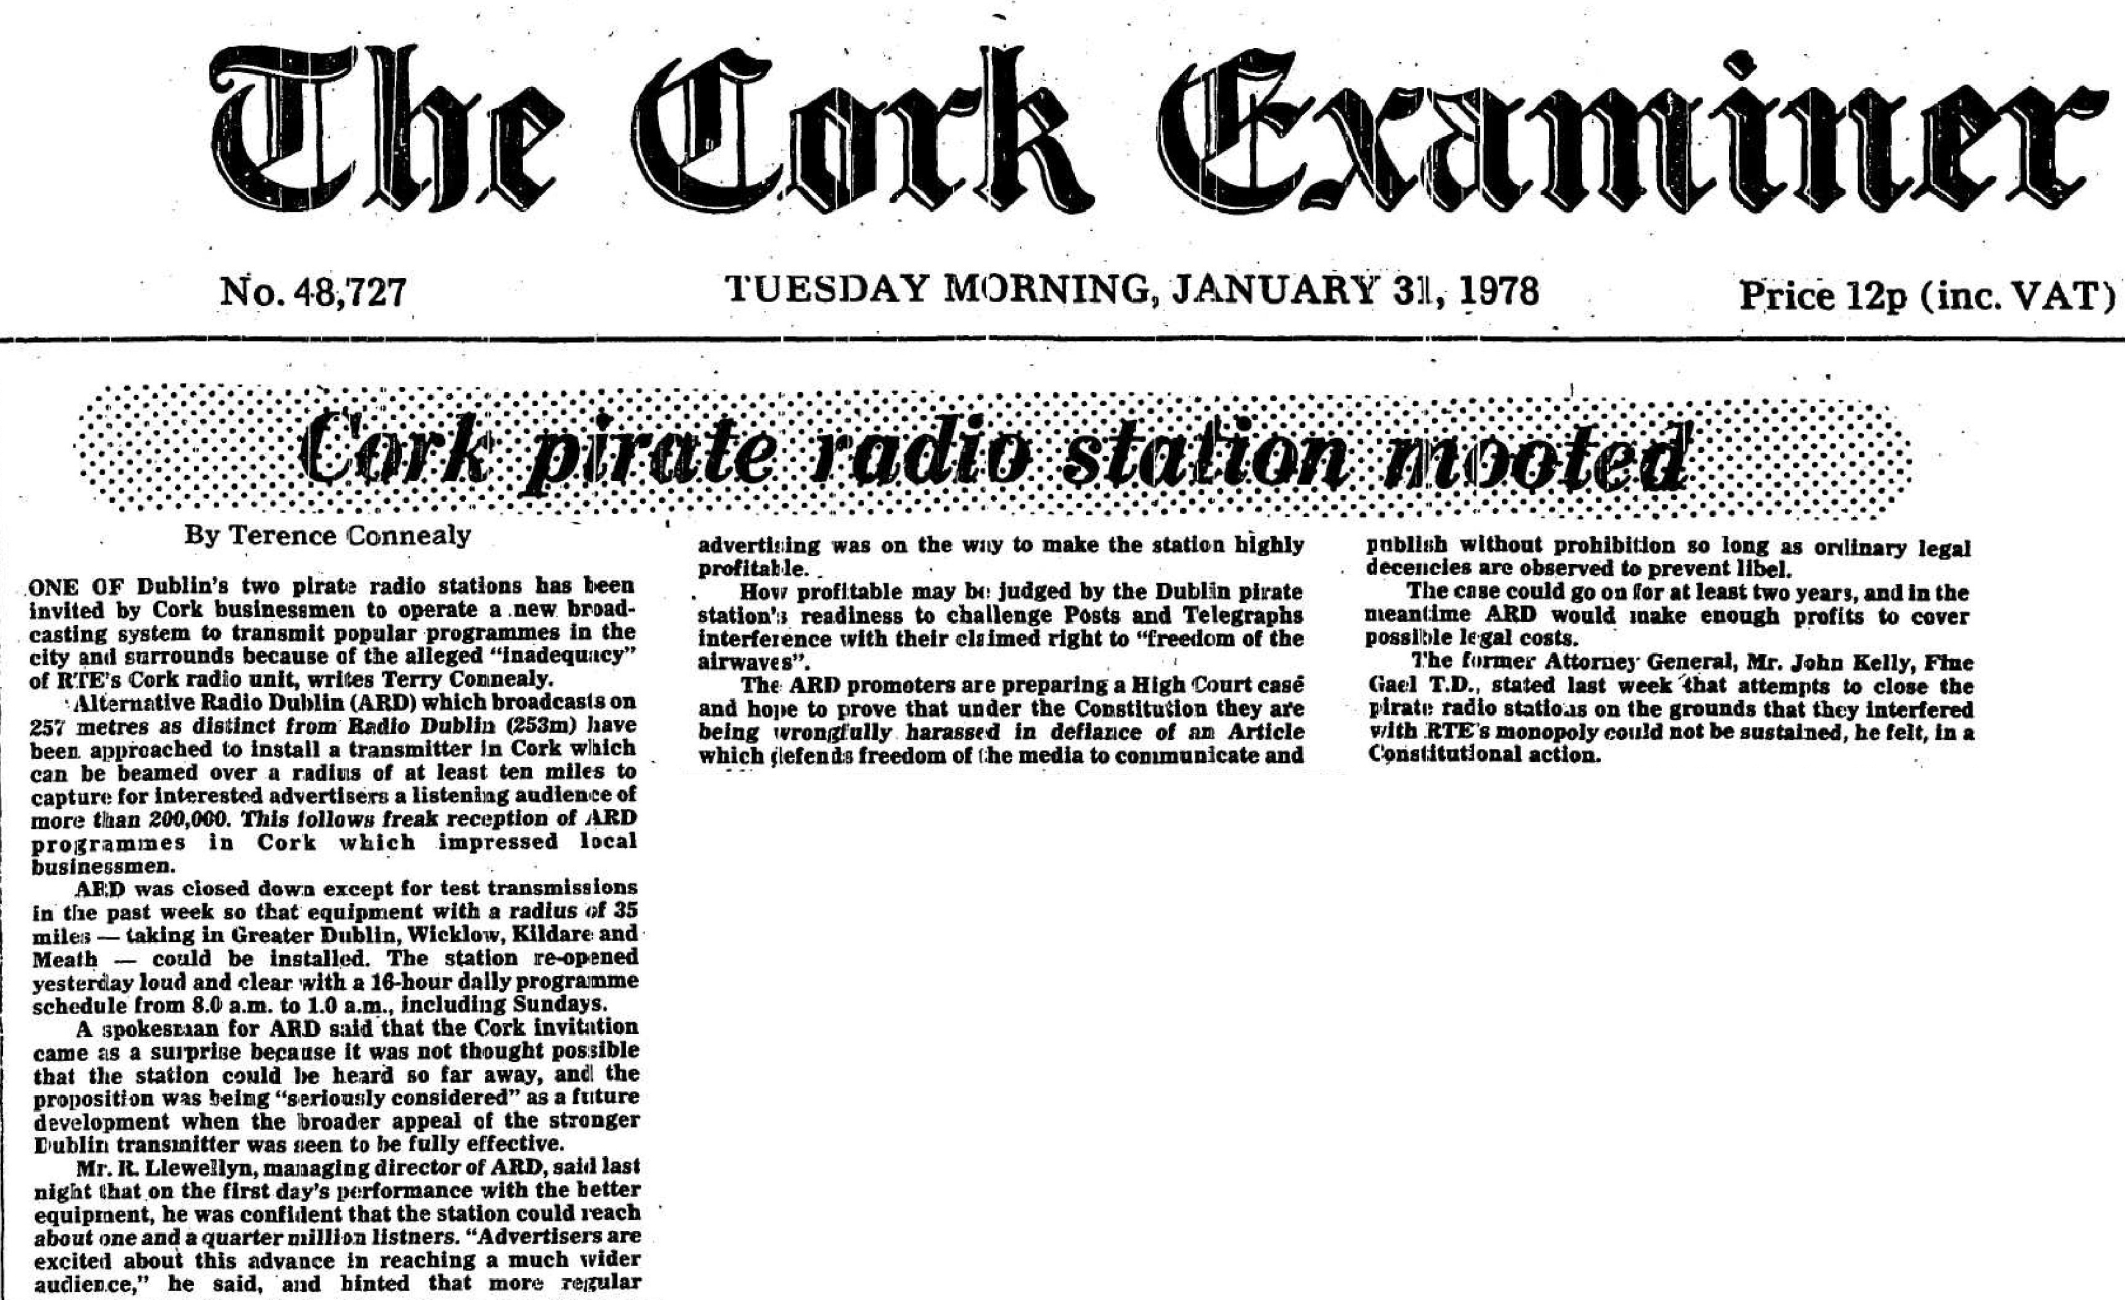 Cork pirate station mooted was a newspaper headline from The Cork Examiner dated January 31st 1978